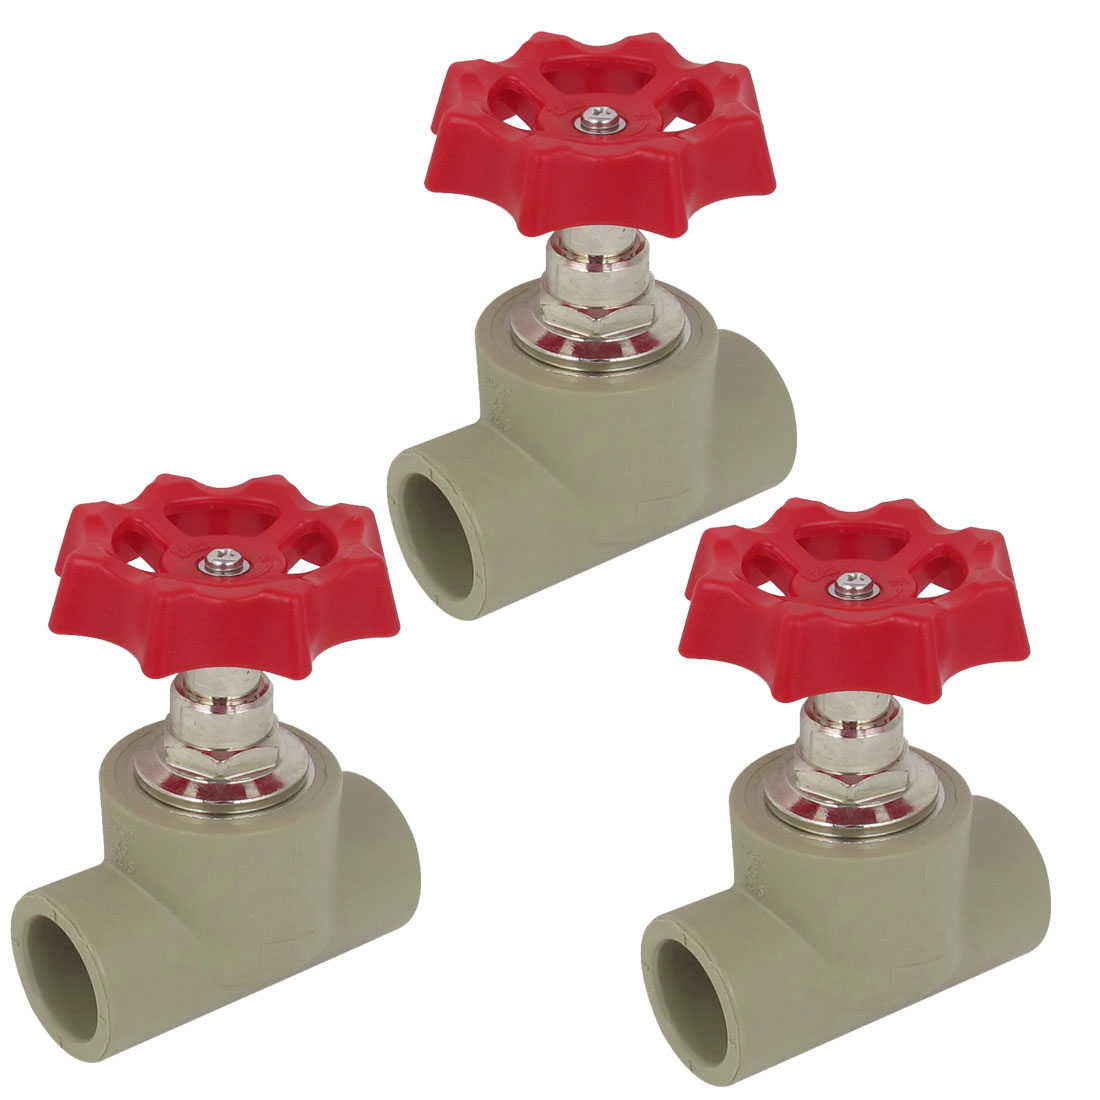 Water Supply 25mm to 25mm Double Way Red Handle PPR Gate Valve 3 PCS